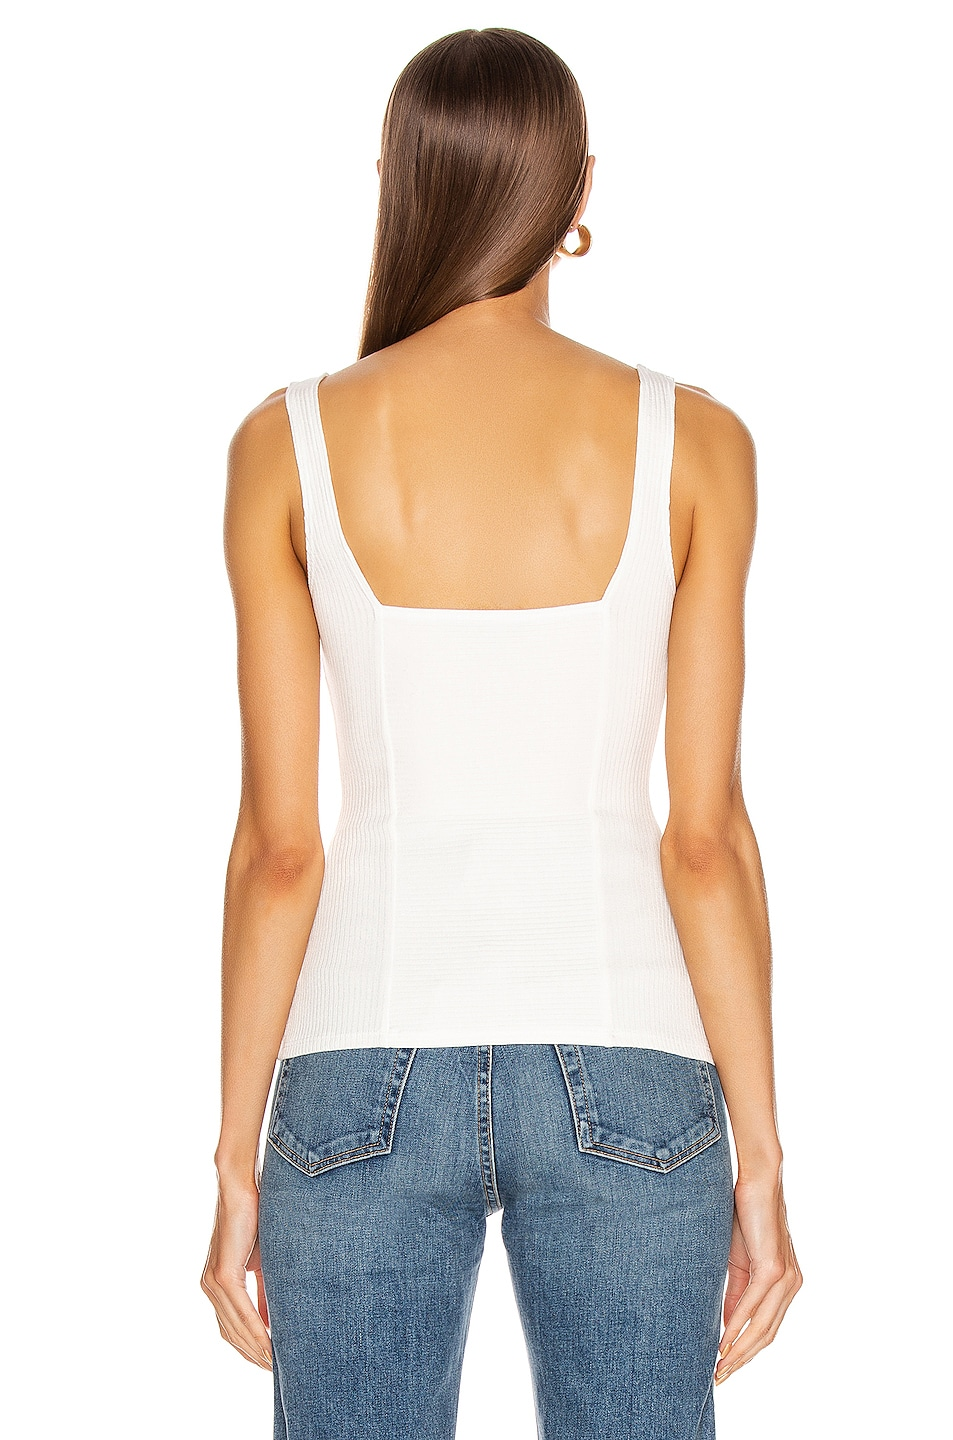 Image 3 of The Range Alloy Rib Structural Tank Top in White